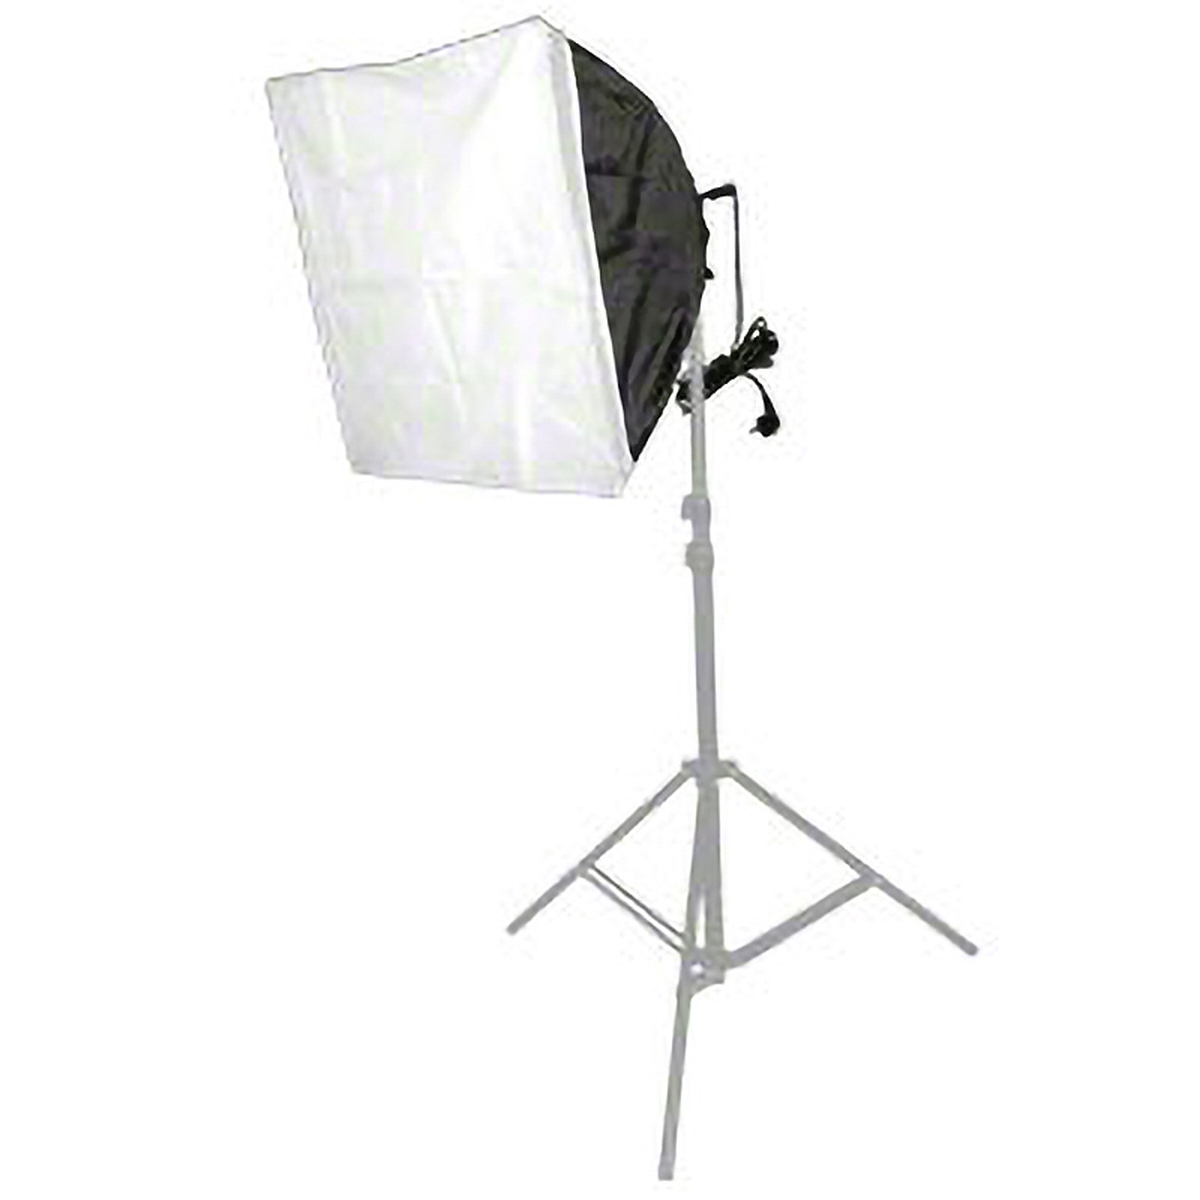 Walimex 3in1 Daylight Softbox + Lichtzelt 3x28W